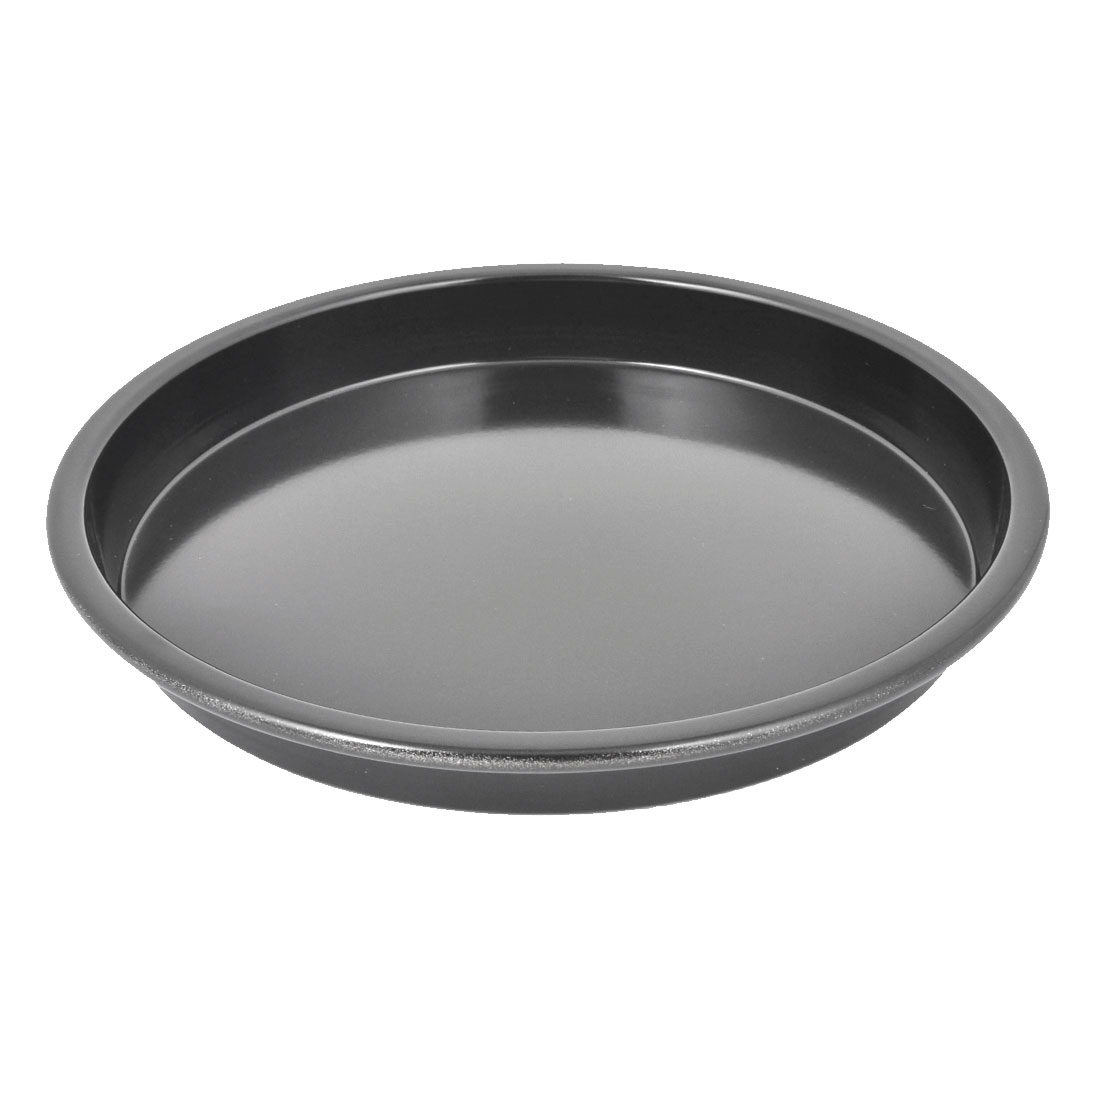 "Pastry Cookie Baking Tool Round Shape Nonstick Steel Pizza Pan Tray Black 8"" Dia"